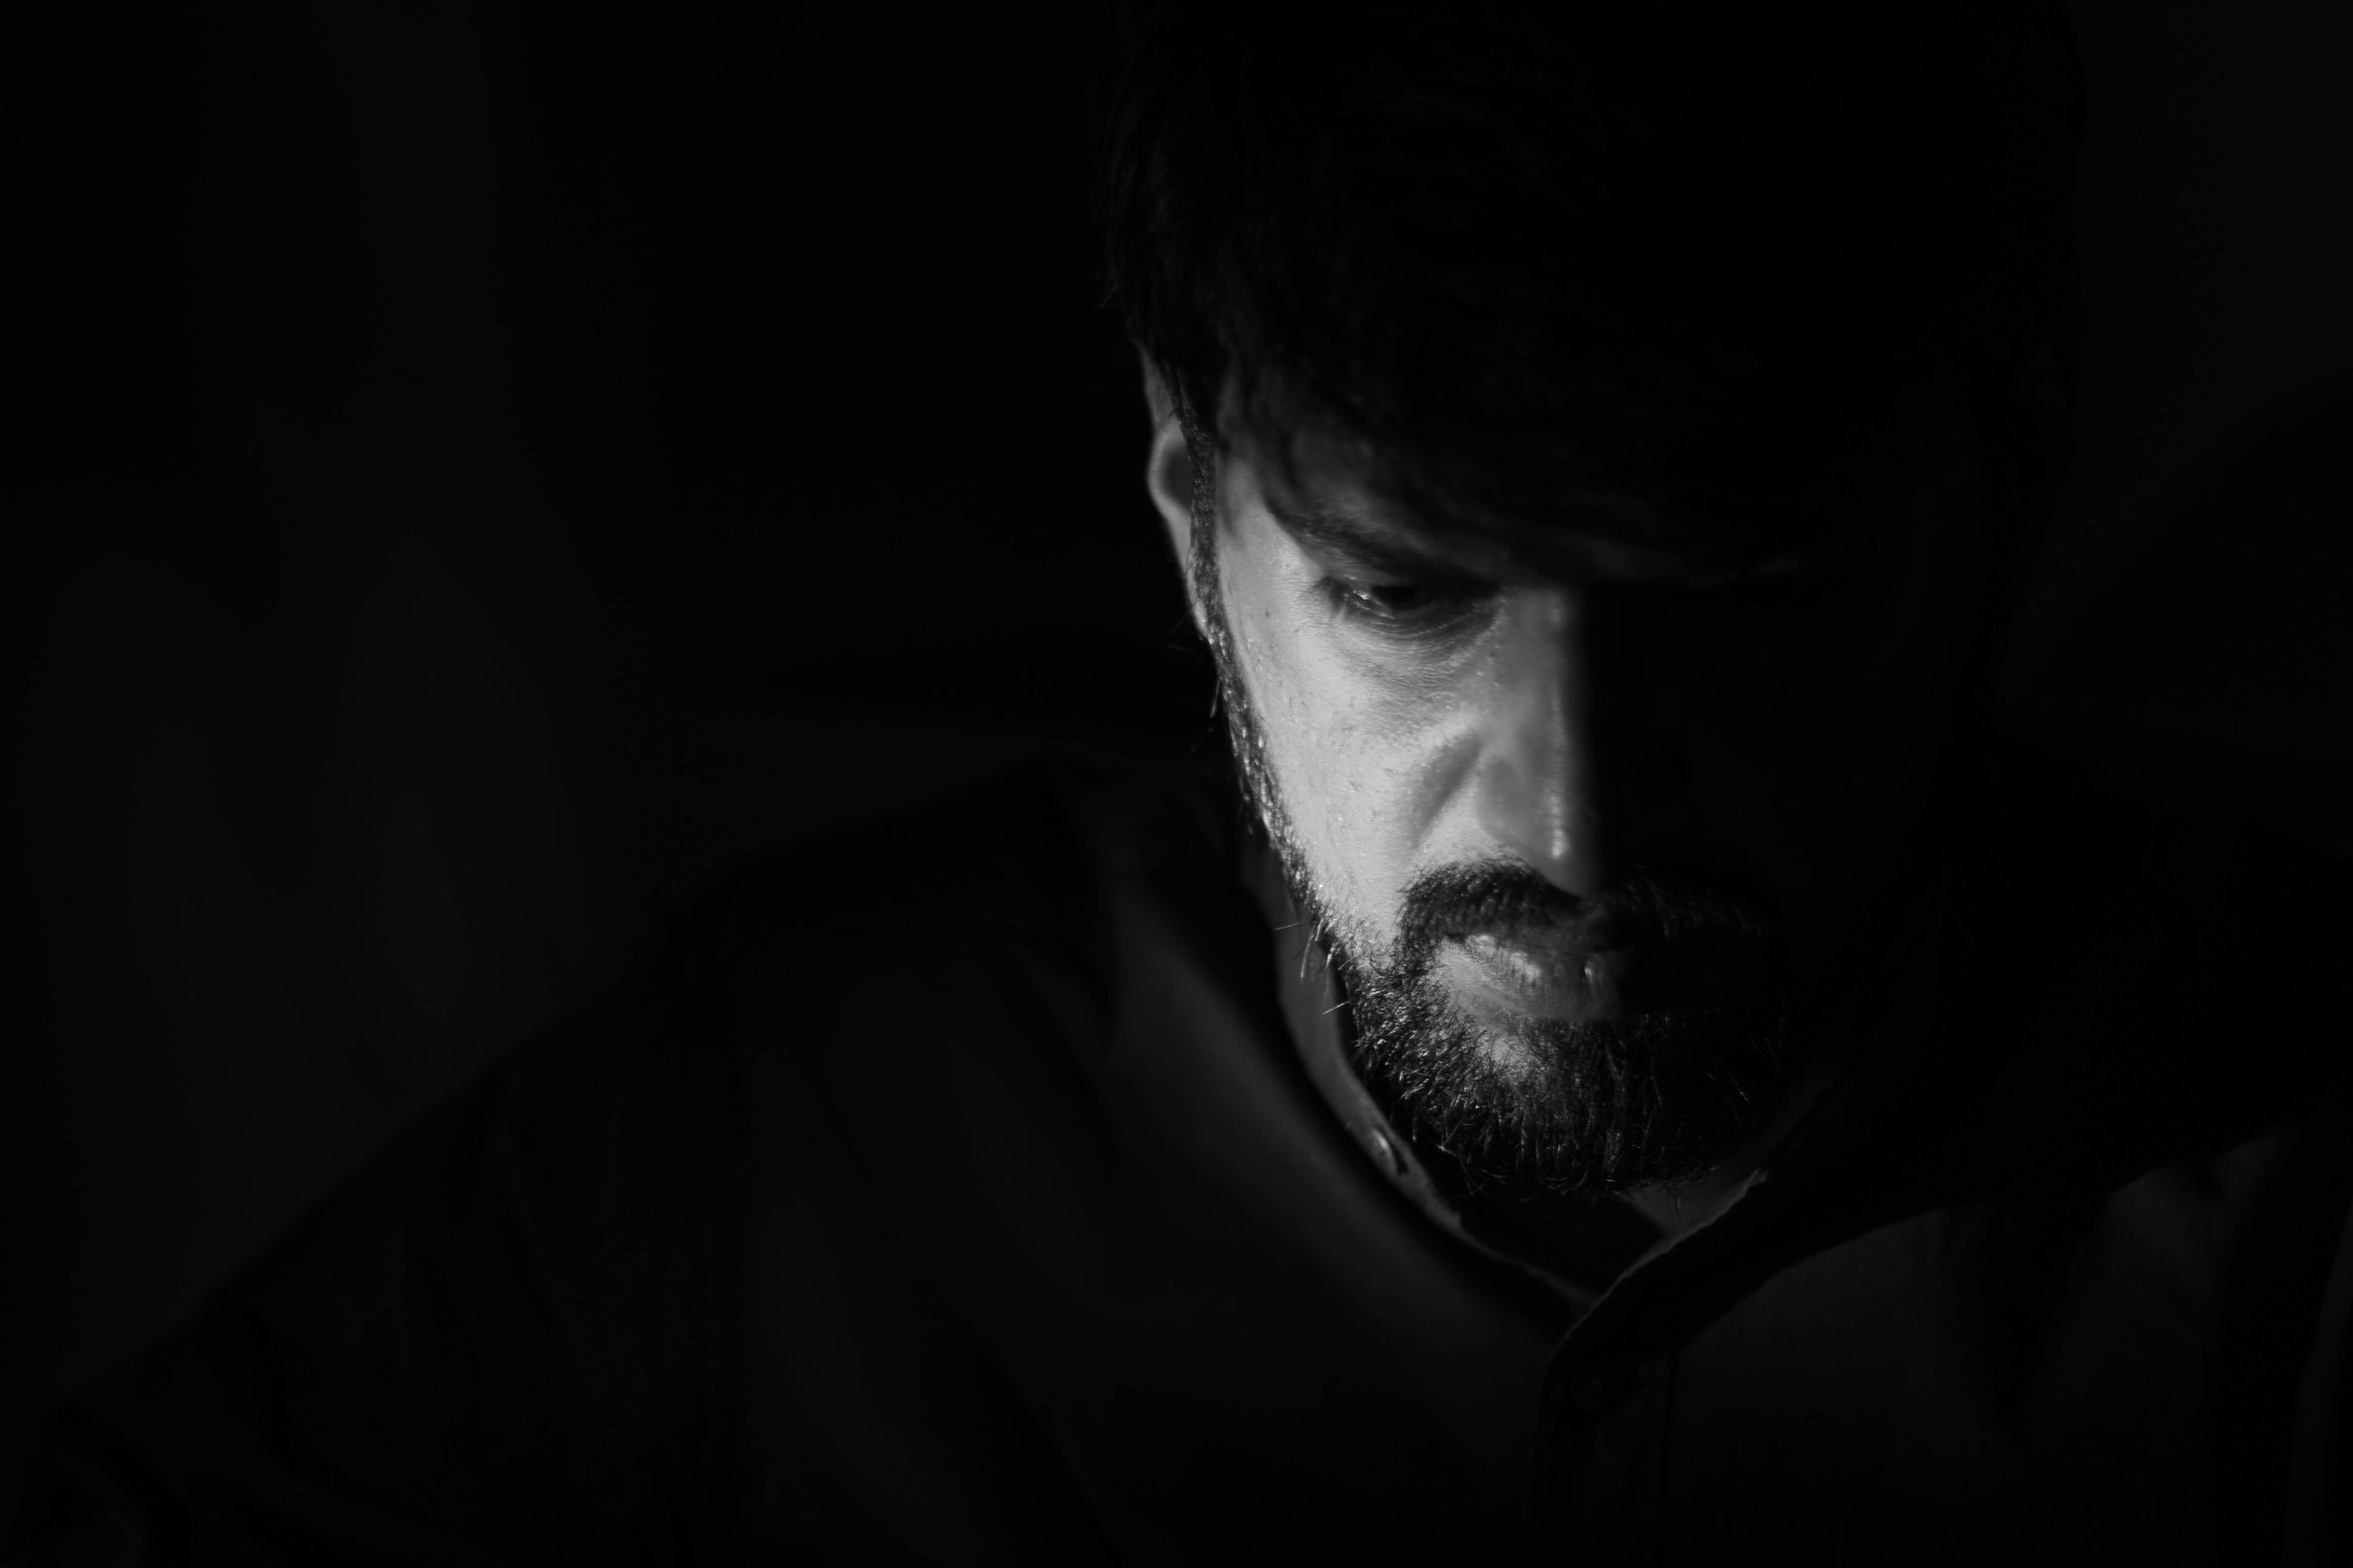 beard, facial hair, one person, black background, studio shot, headshot, indoors, men, males, portrait, close-up, mid adult men, front view, mid adult, adult, dark, lifestyles, young men, body part, human face, mustache, contemplation